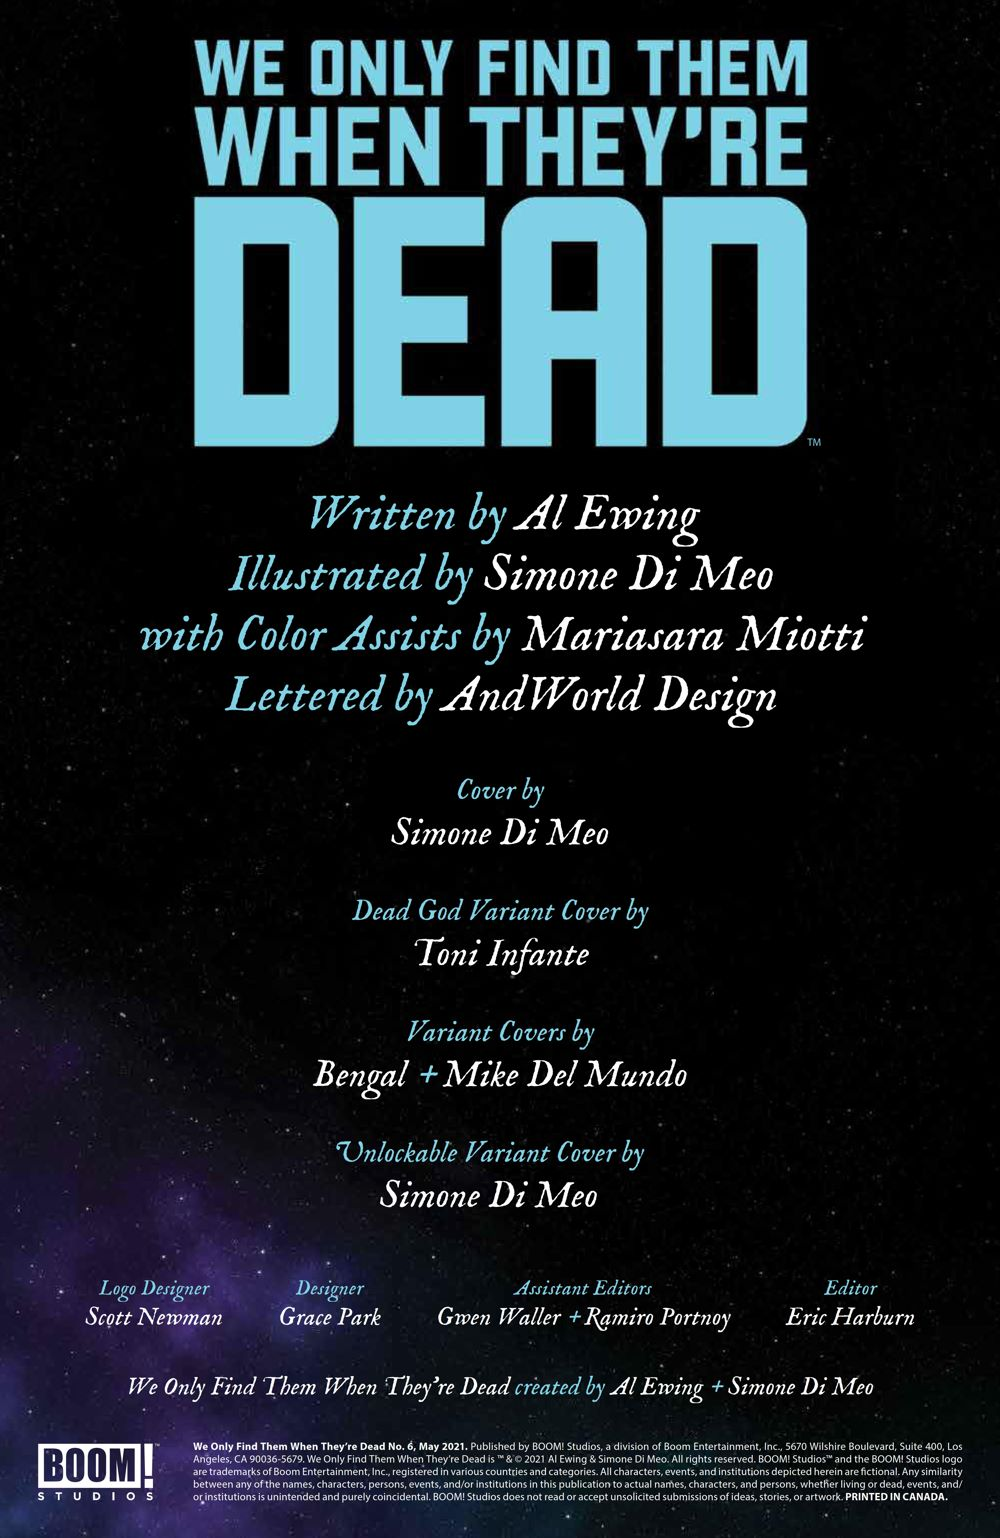 WeOnlyFindThem_006_PRESS_2 ComicList Previews: WE ONLY FIND THEM WHEN THEY'RE DEAD #6